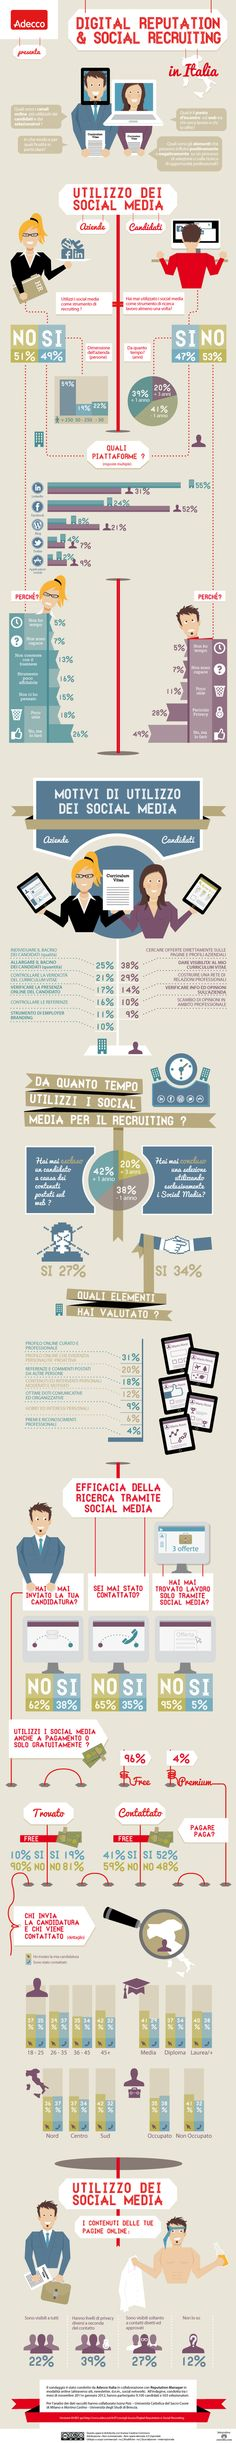 The info graphic on Digital reputation and Social recruiting that was commissioned to me  (as zooroma.com) by  Adecco Italia